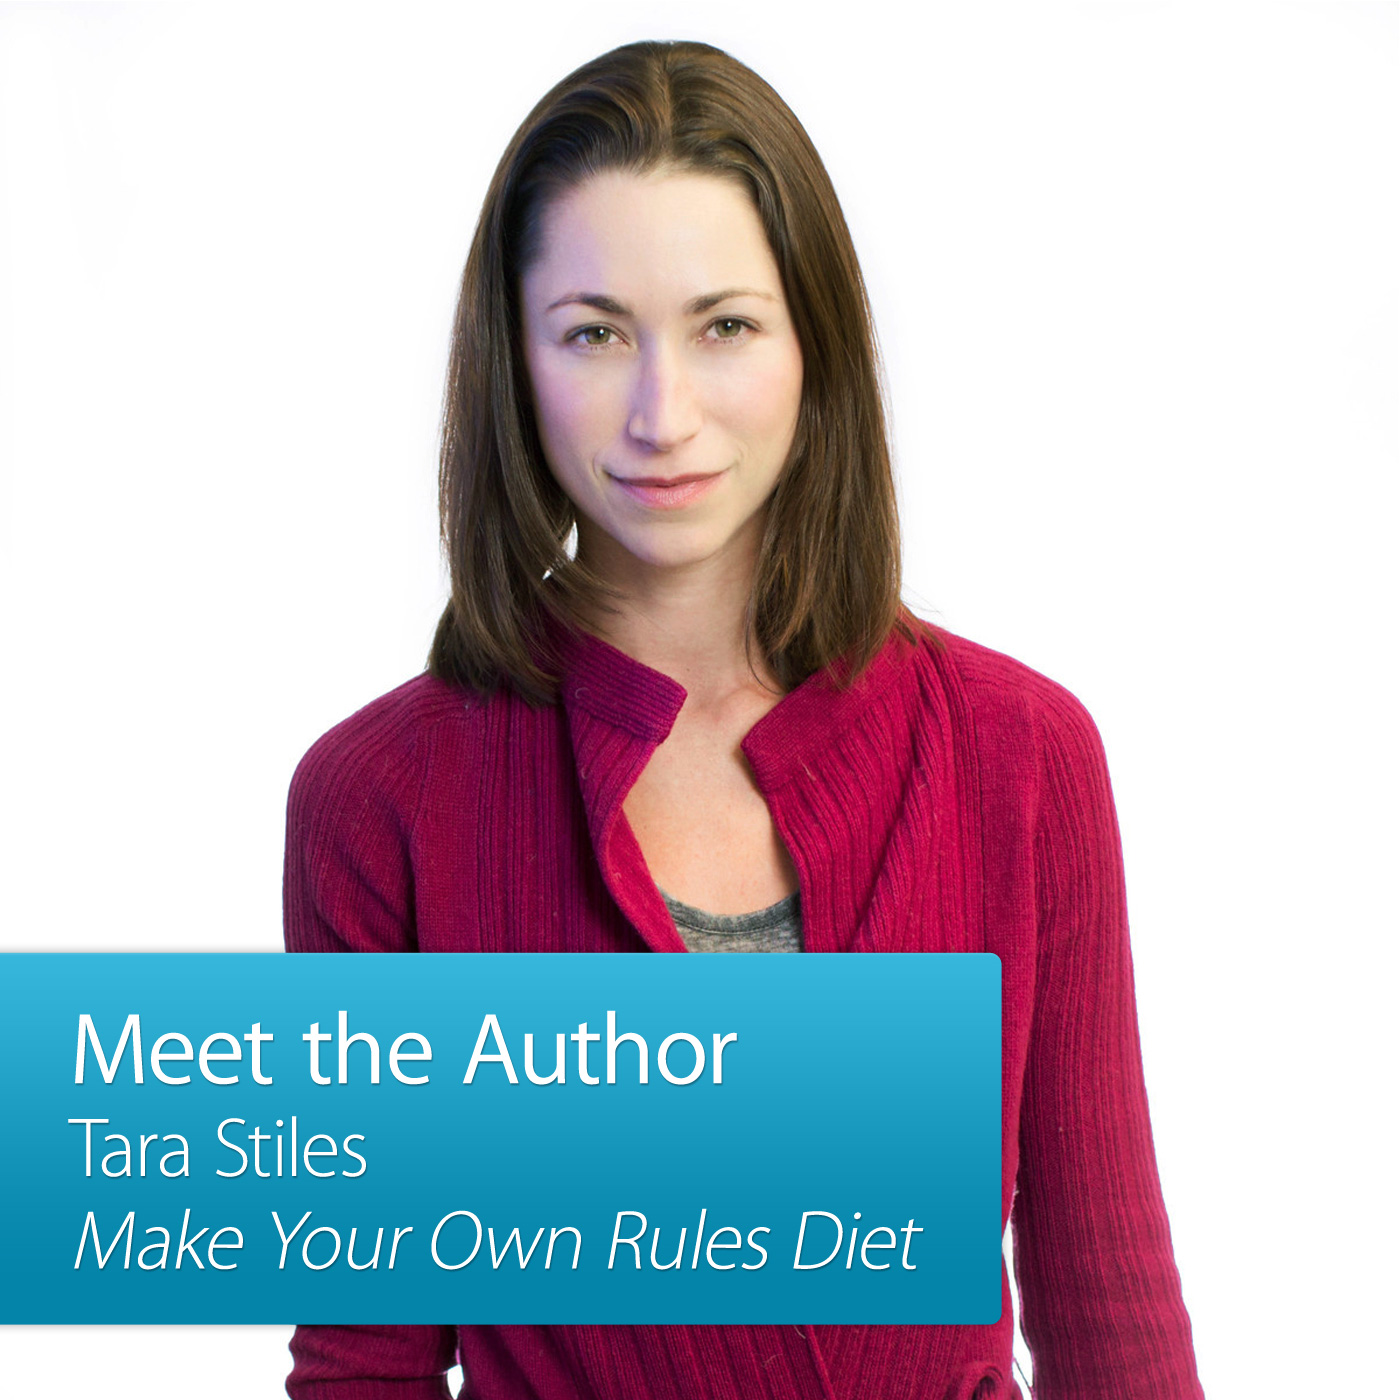 Tara Stiles: Meet the Author